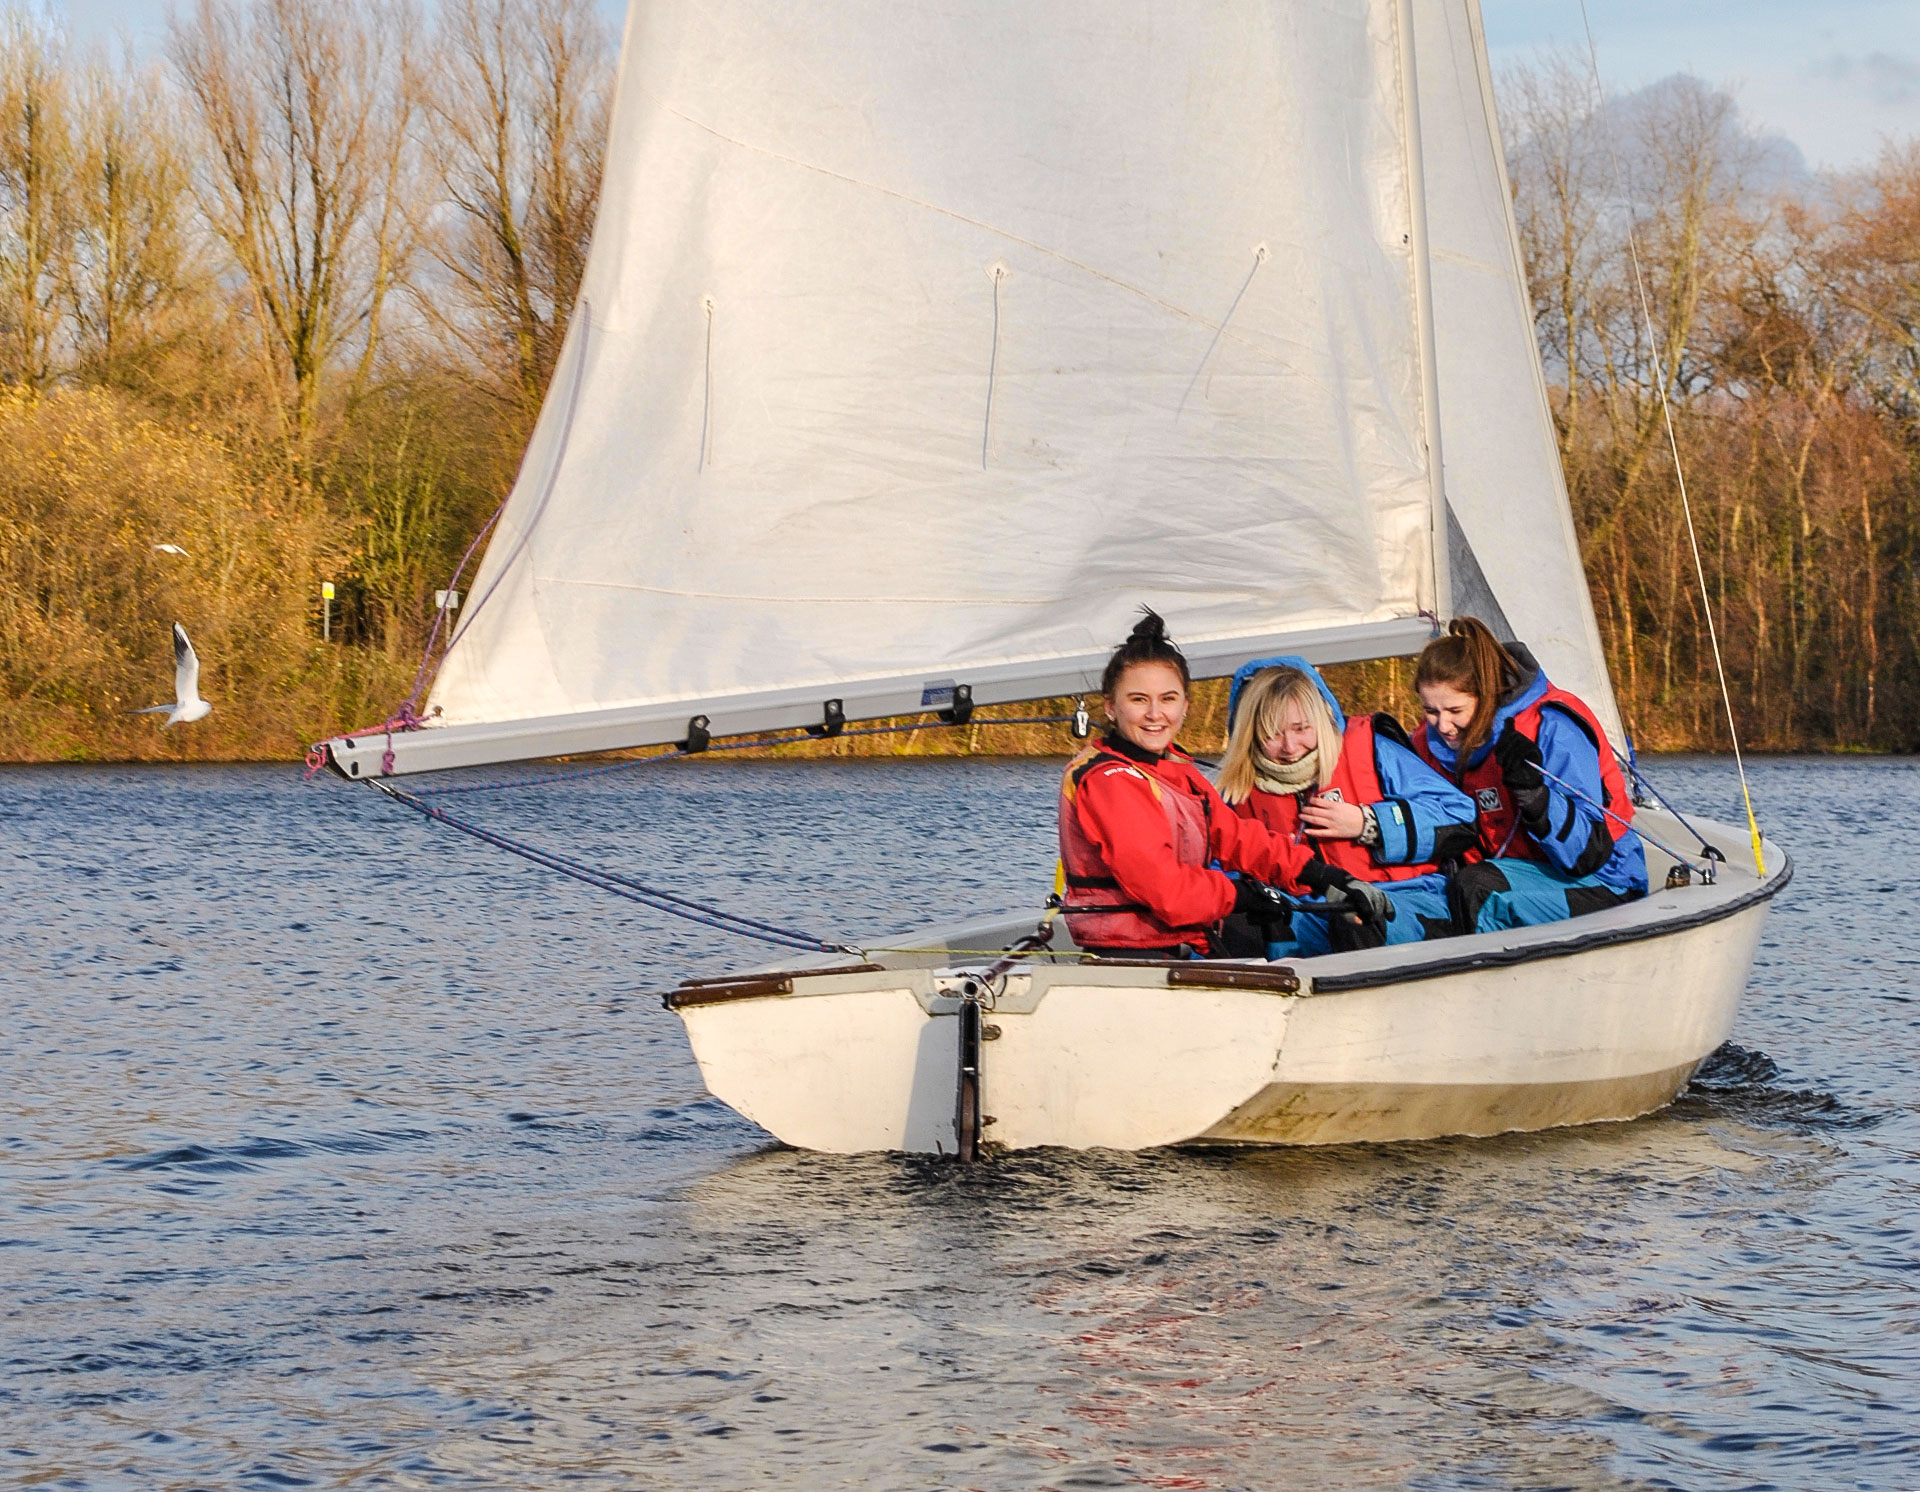 End of term sailing experience at Debdale Outdoor Centre - The PrintCity Blog - Manchester Metropolitan University